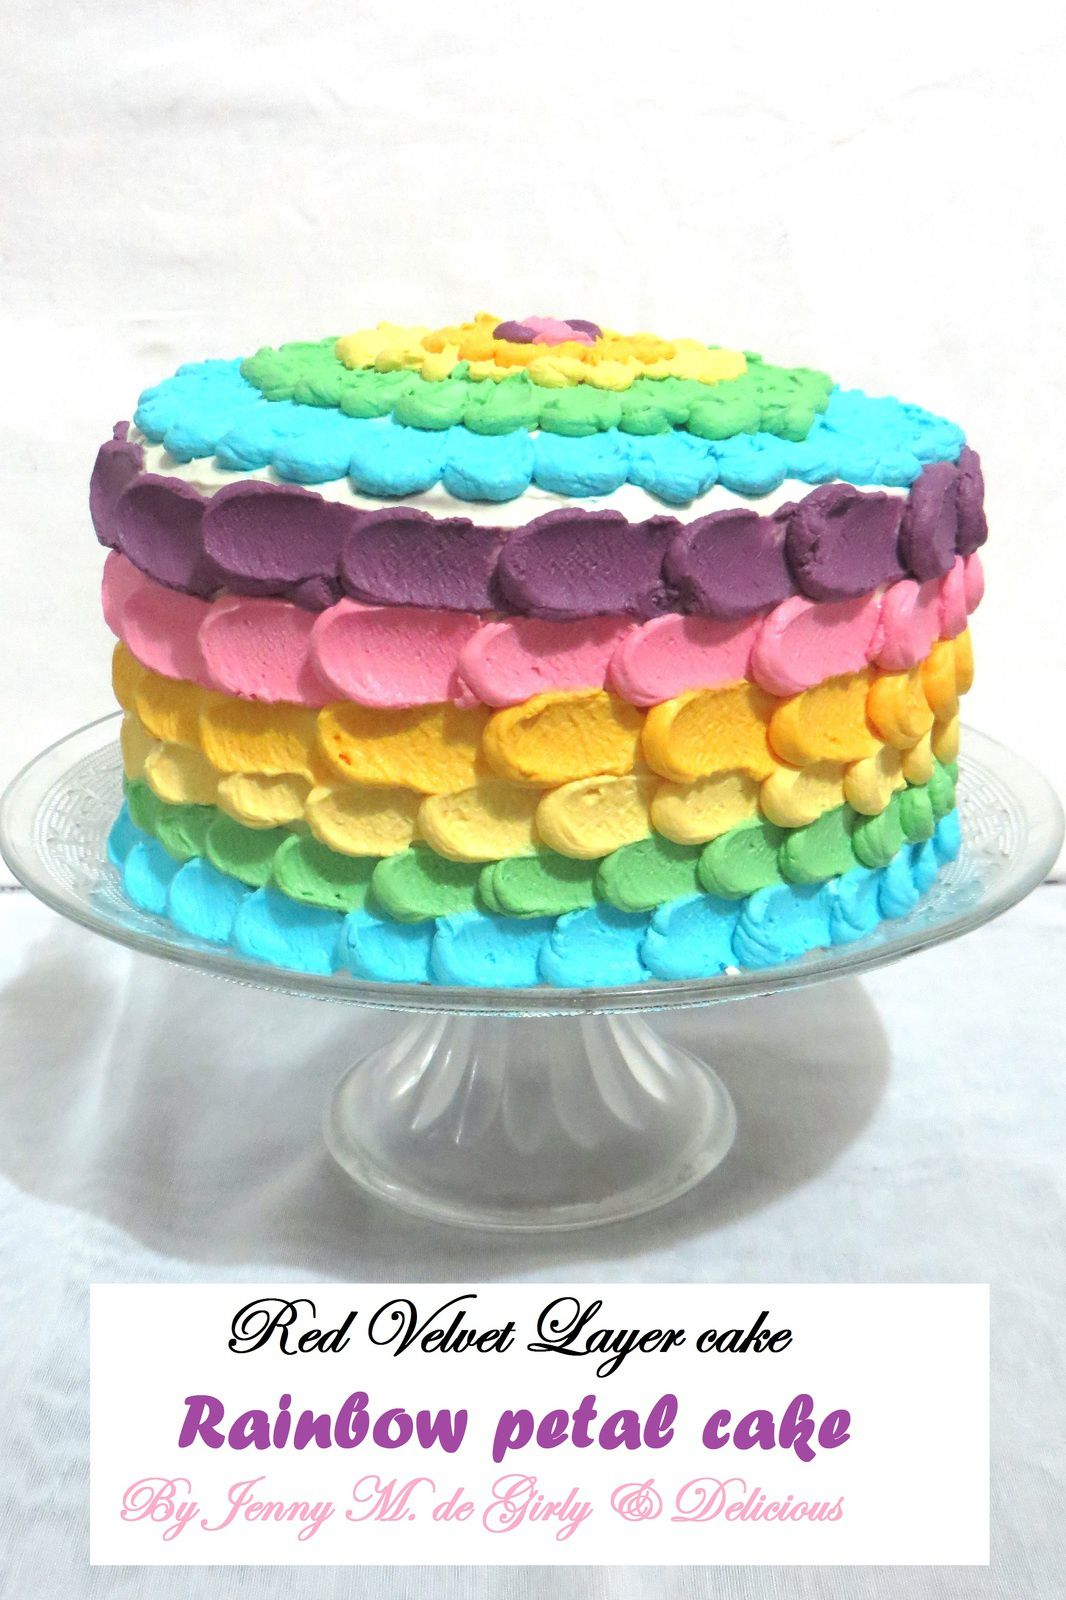 Red Velvet Layer cake, Rainbow petal cake